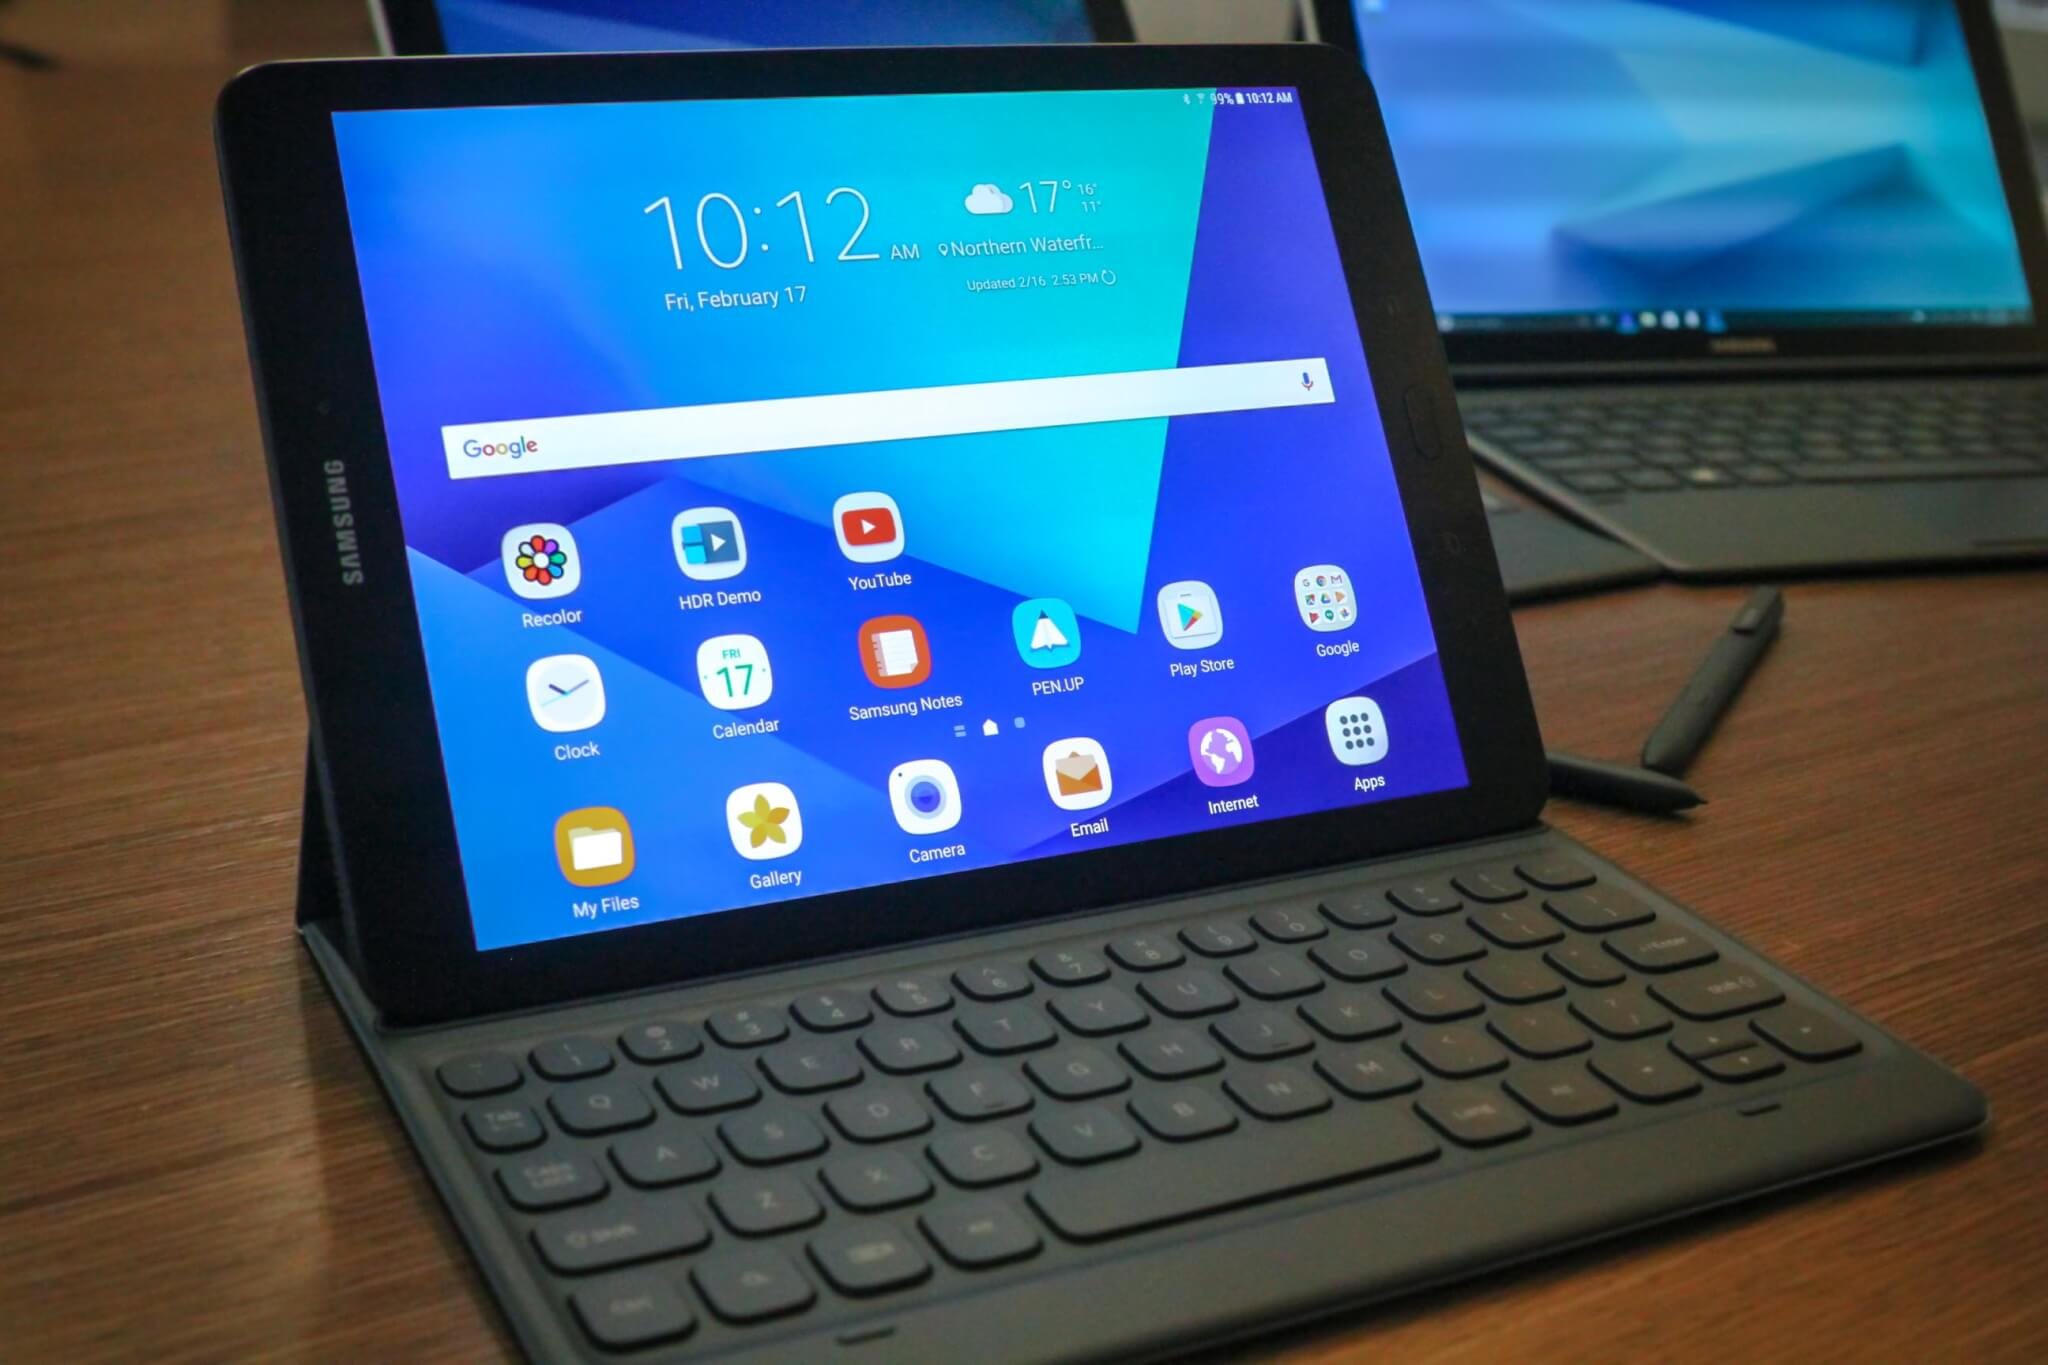 samsung 39 s galaxy tab s3 tablet will cost 600 with. Black Bedroom Furniture Sets. Home Design Ideas